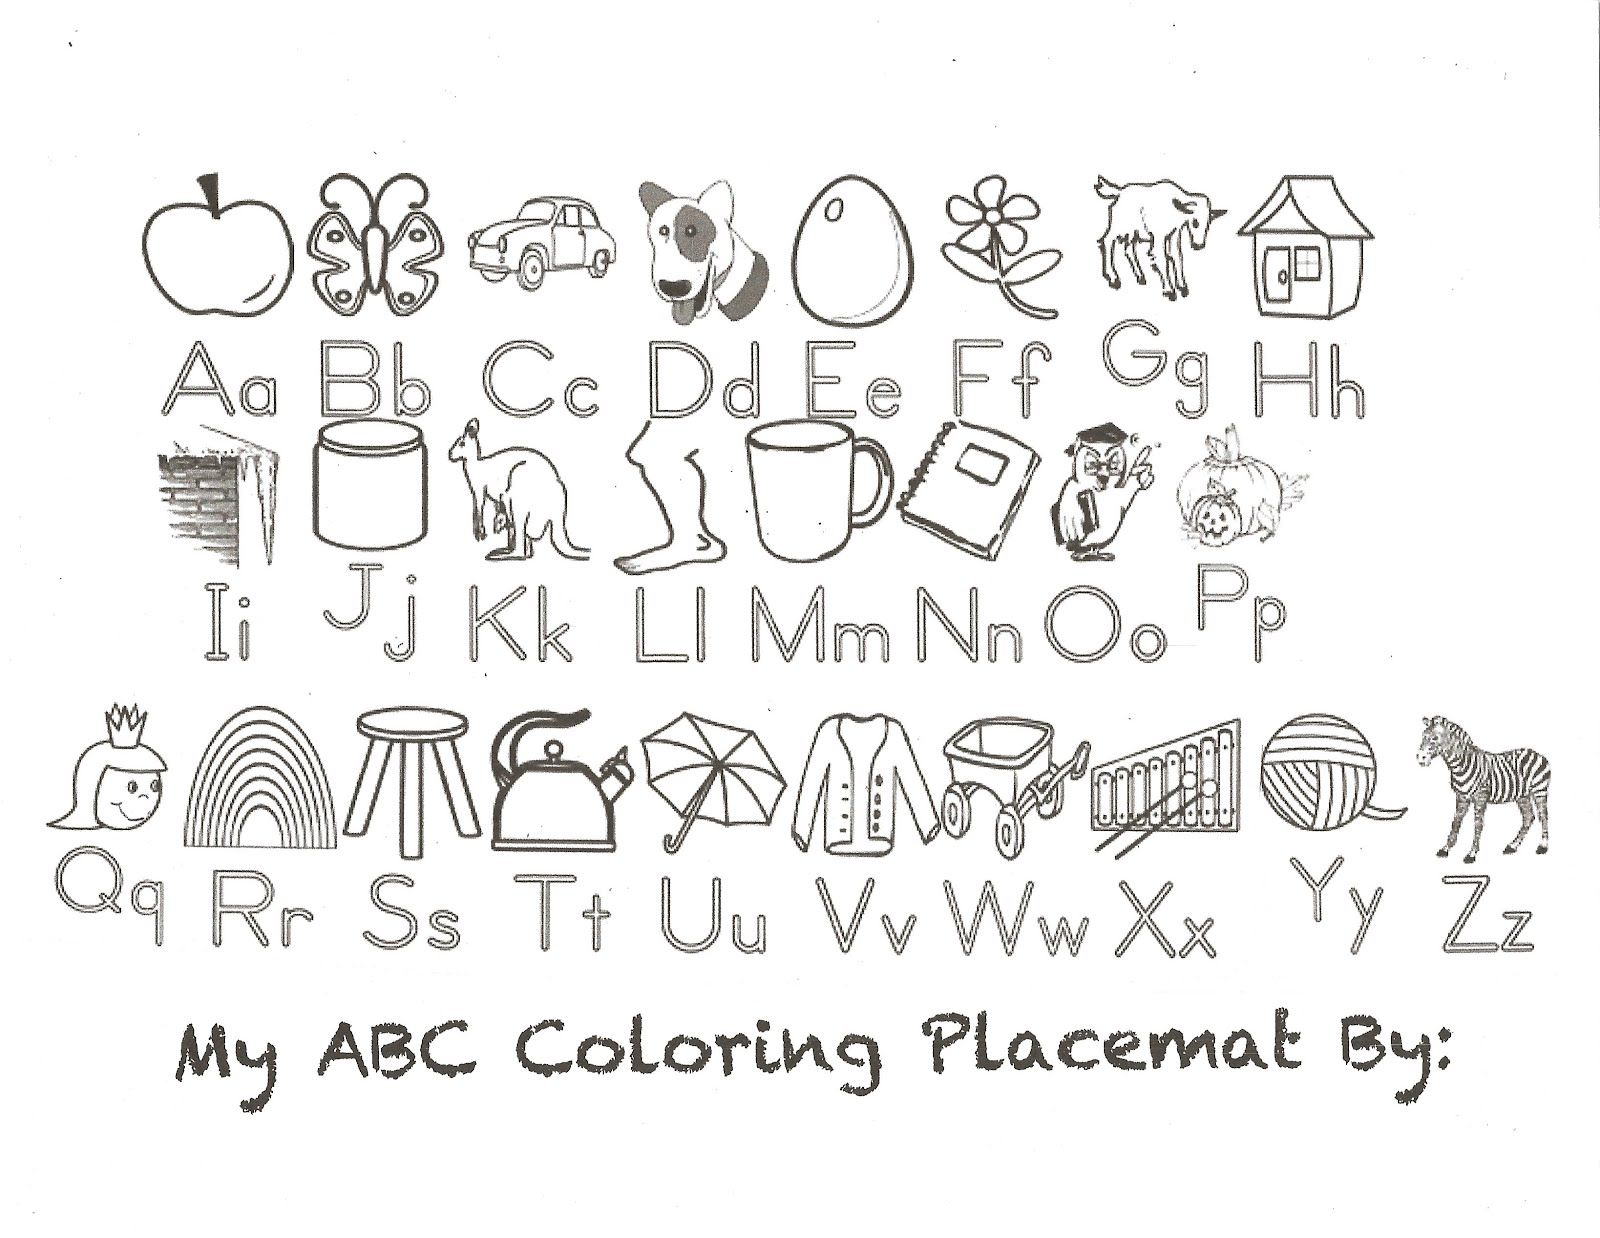 coloring pages abc - abc coloring placemat preschool pinterest placemat